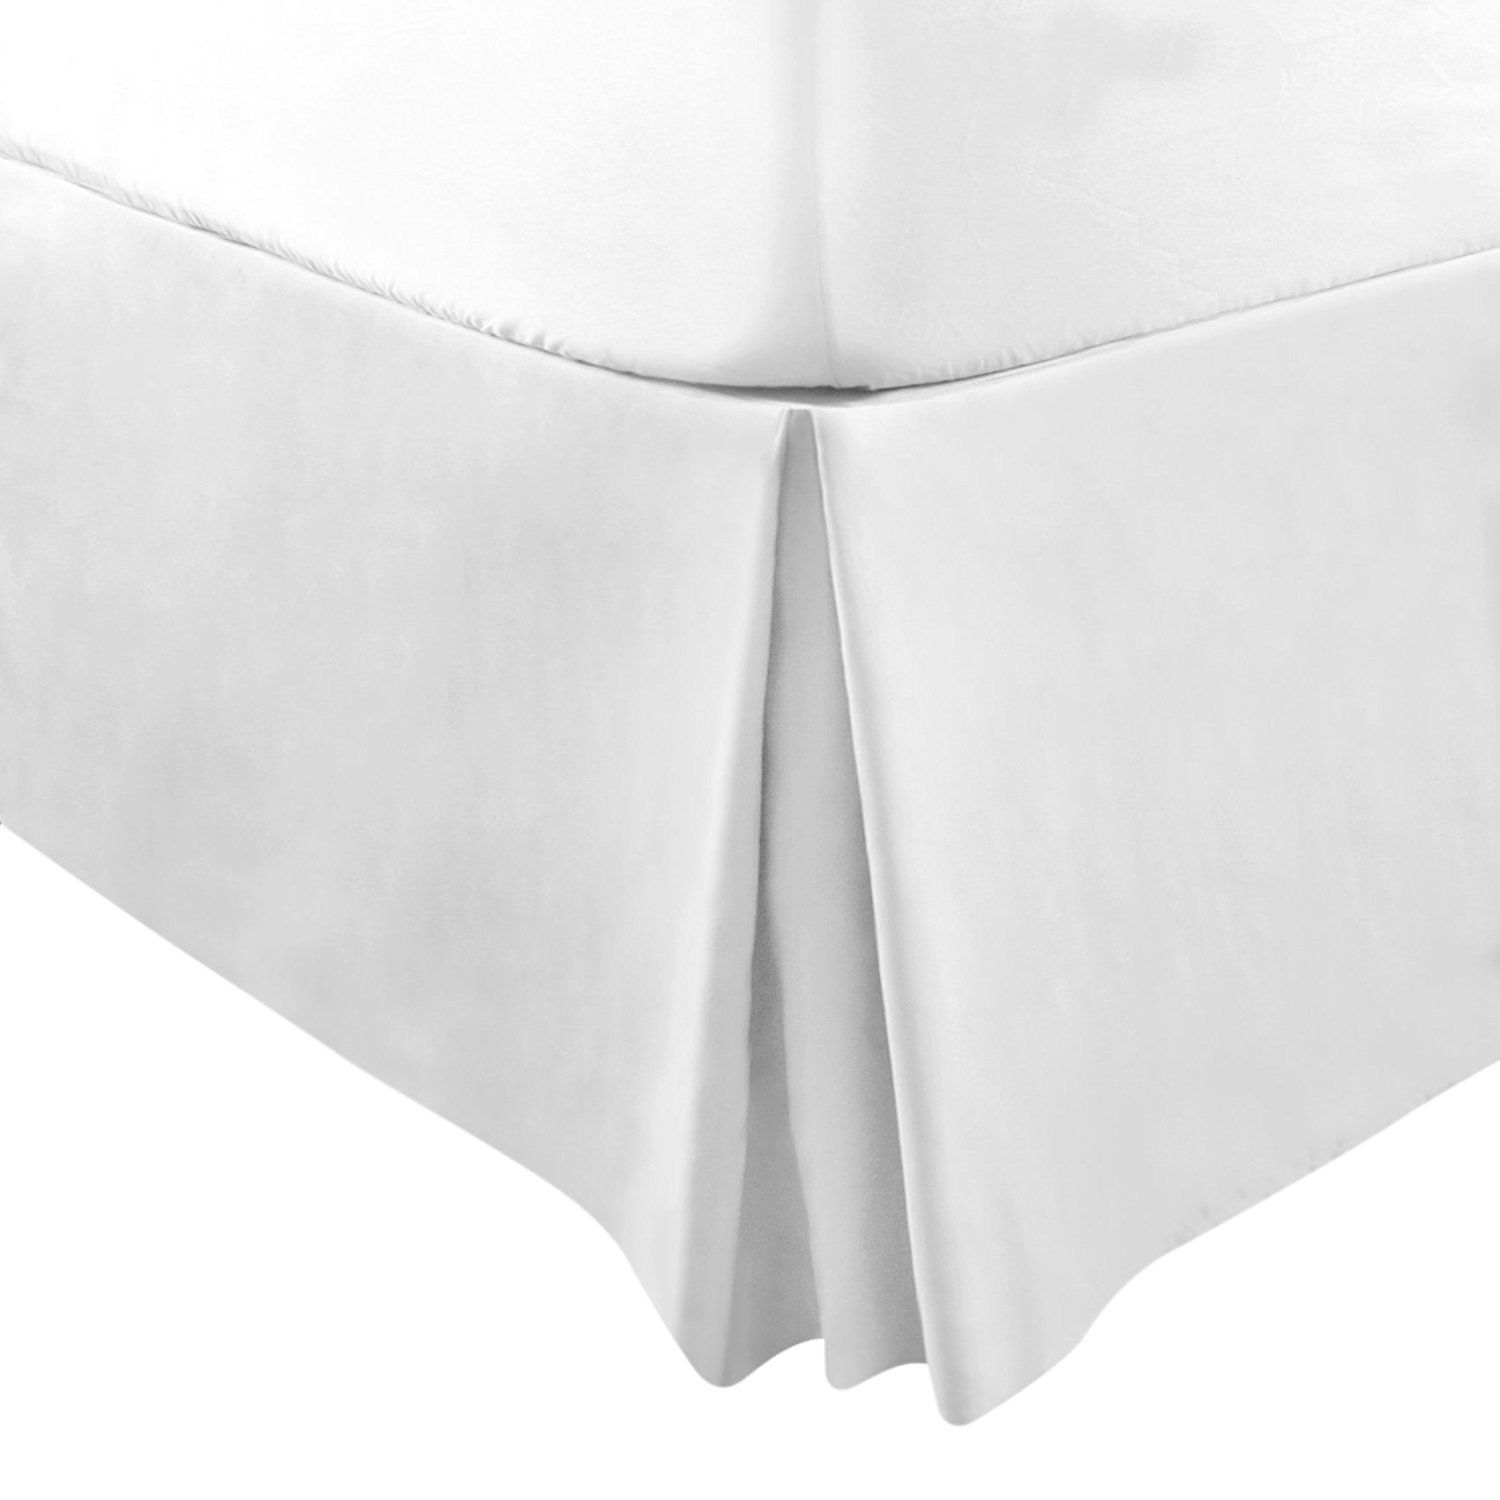 Bed Skirt 15 Inch Fall Brushed Microfiber Bed Wrap With Platform